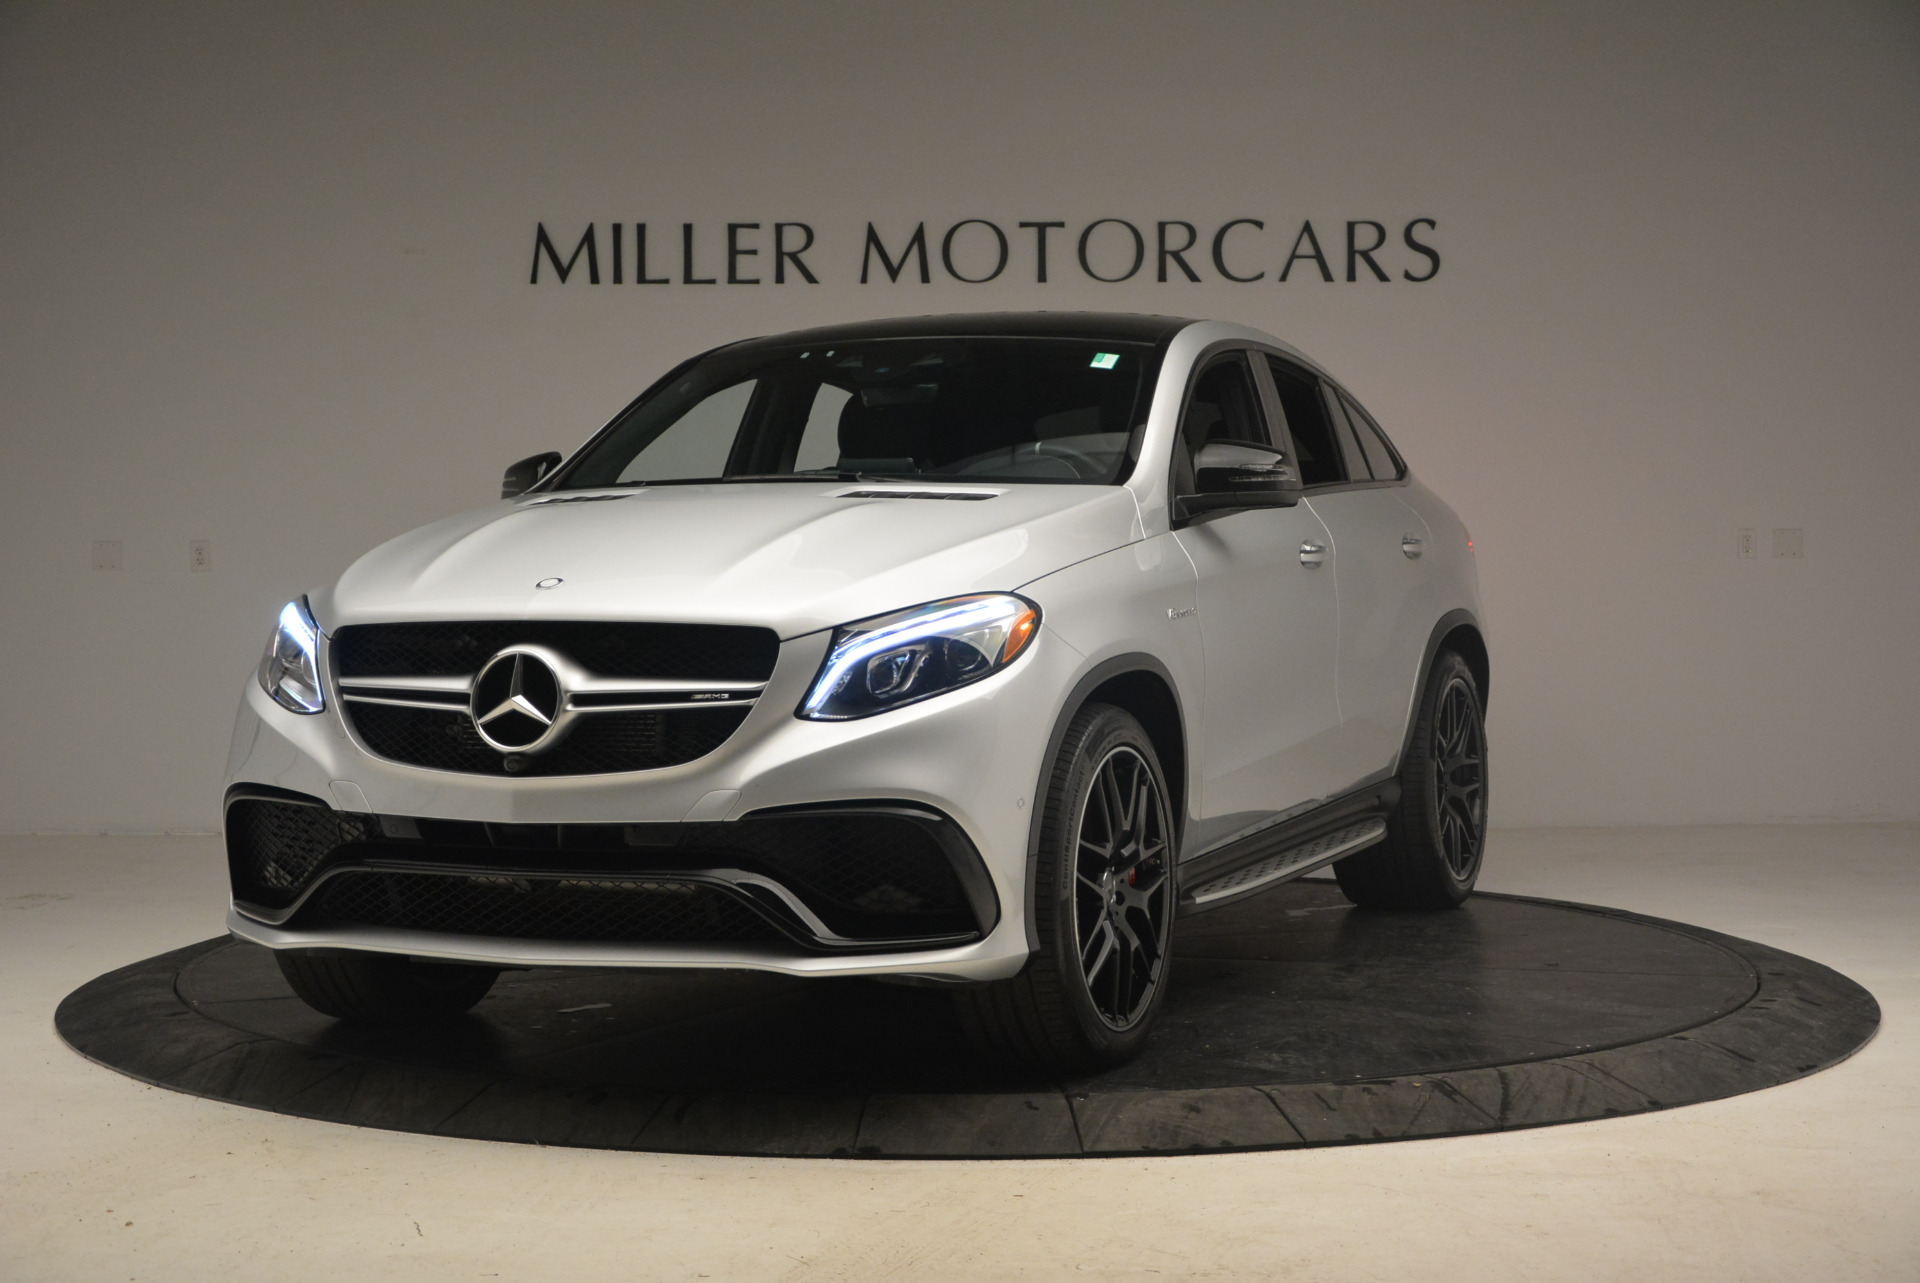 Used 2016 Mercedes Benz AMG GLE63 S for sale Sold at Bentley Greenwich in Greenwich CT 06830 1